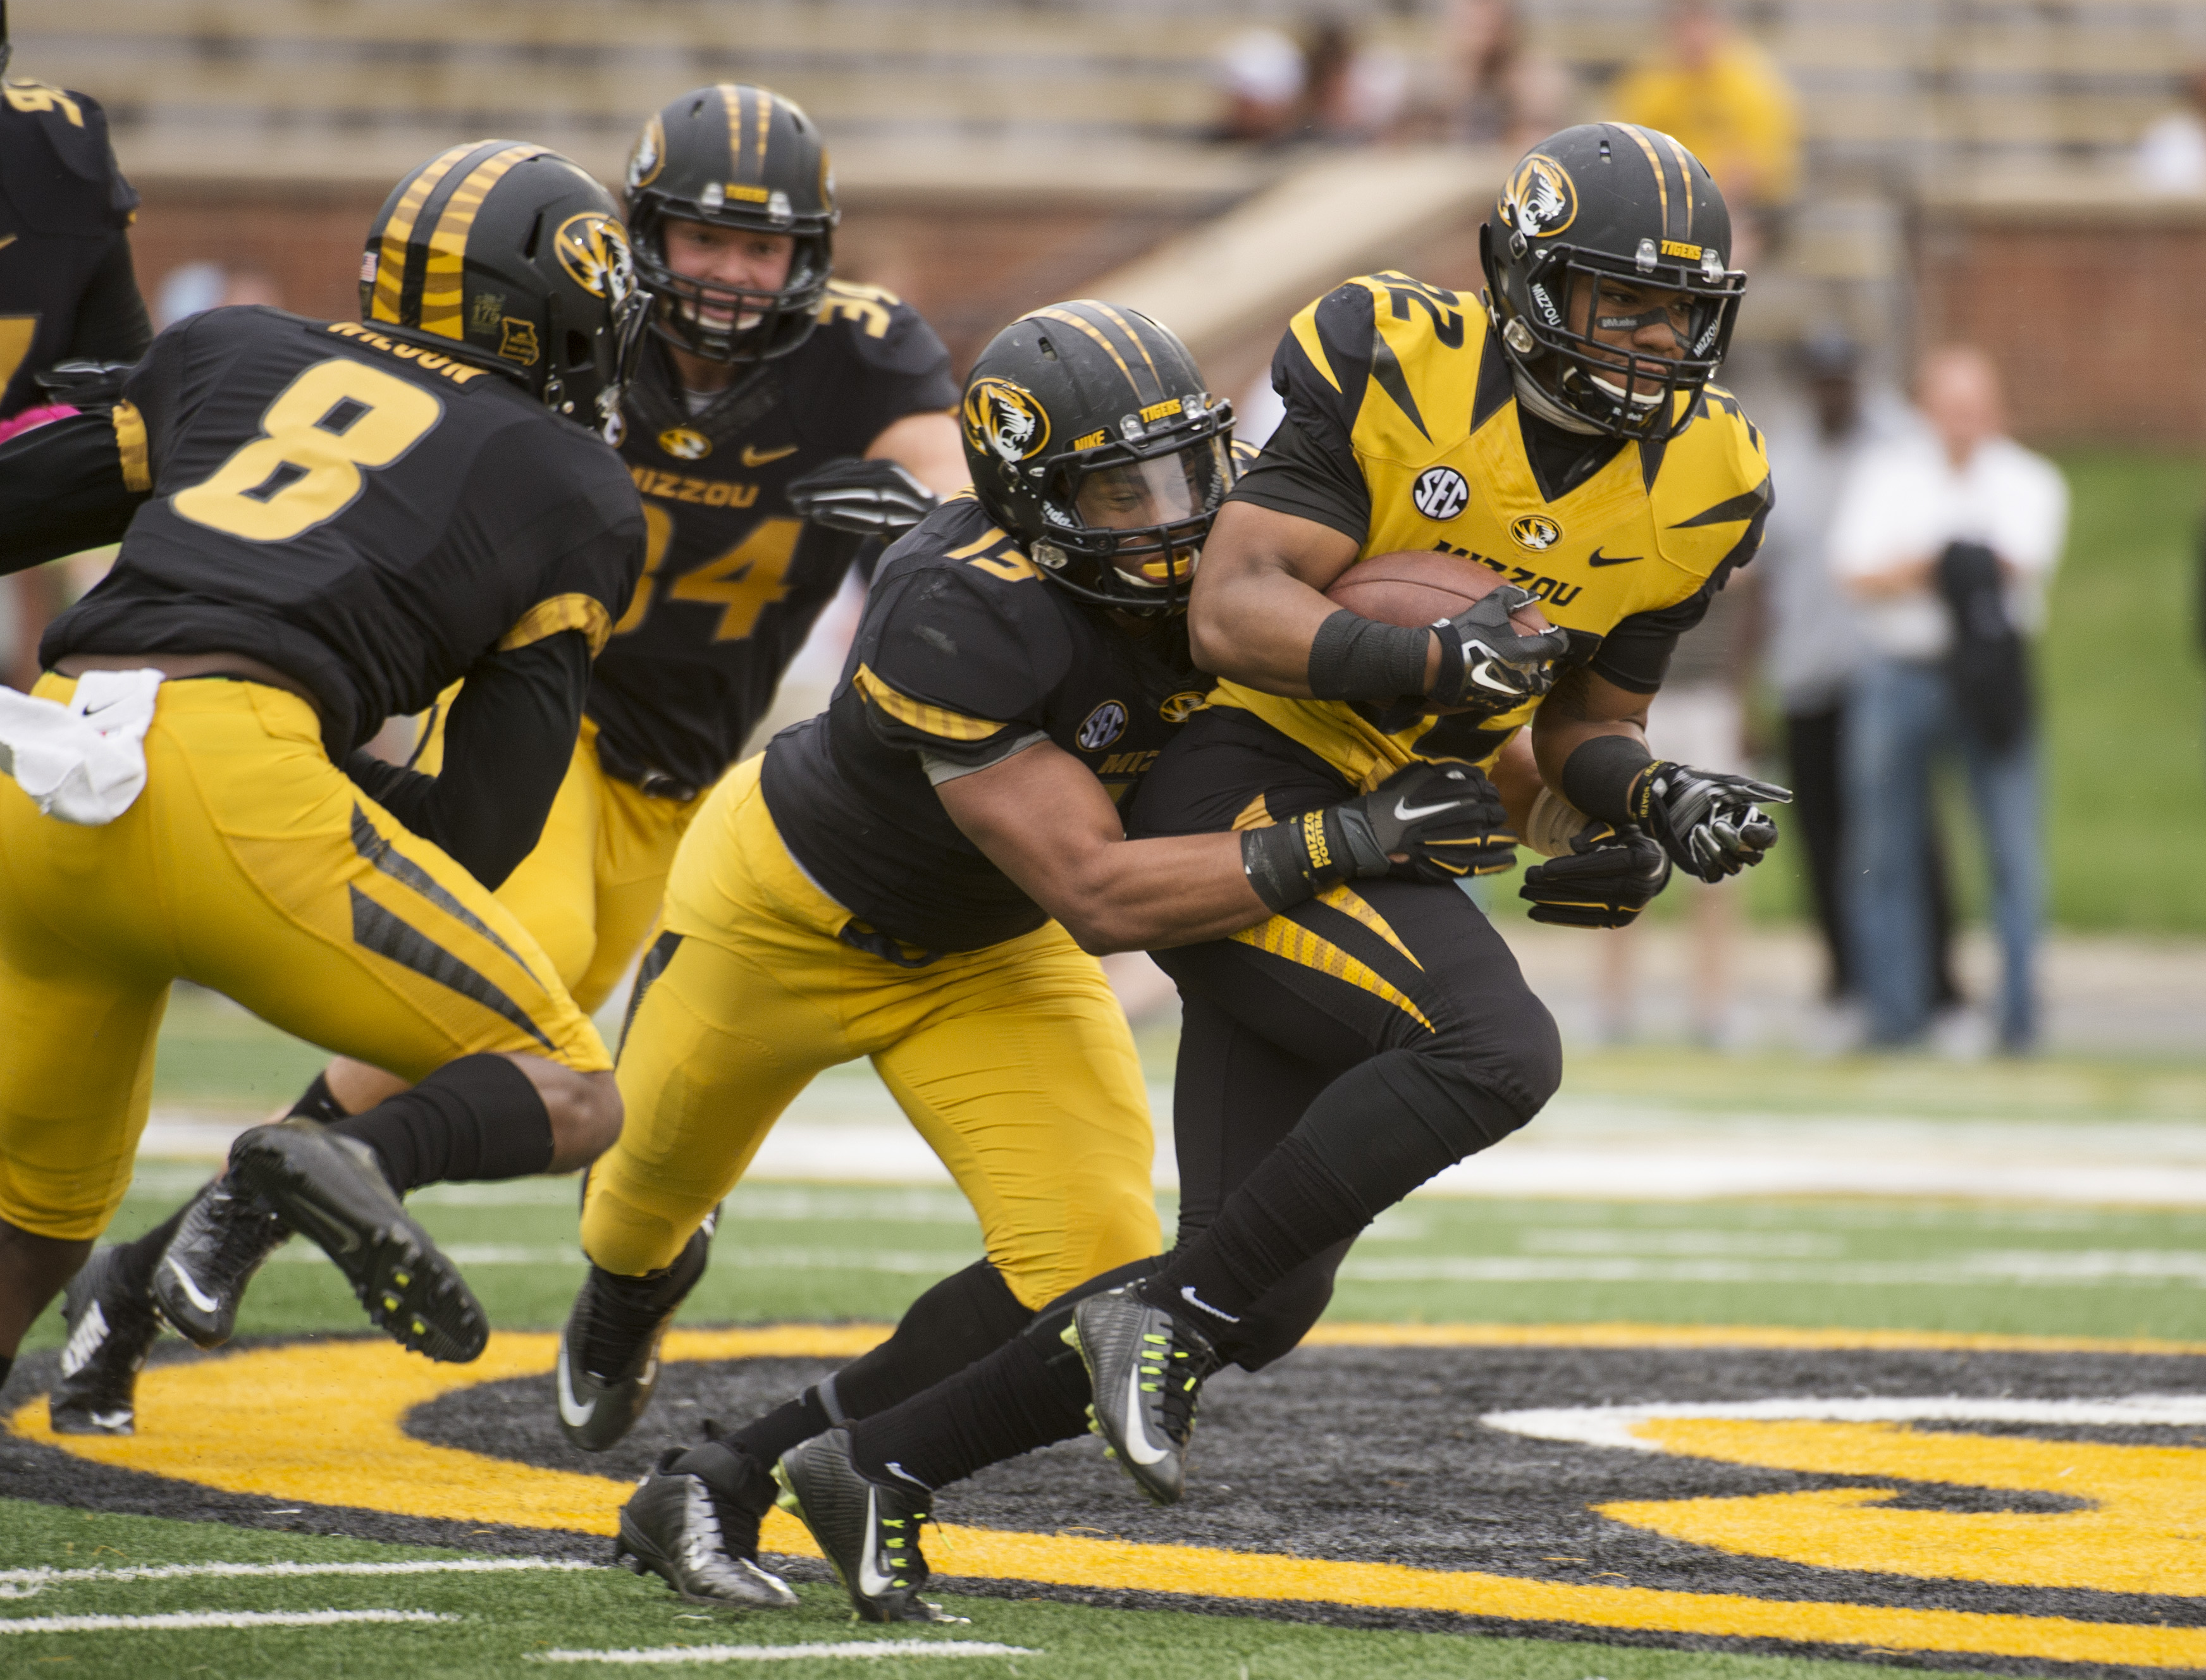 Missouri running back Russell Hansbrough, right, is tackled by Spencer Williams (13) while Thomas Wilson, left, and Joey Burkett (34) move in during an NCAA college spring football game Saturday, April 18, 2015, in Columbia, Mo. (AP Photo/L.G. Patterson)